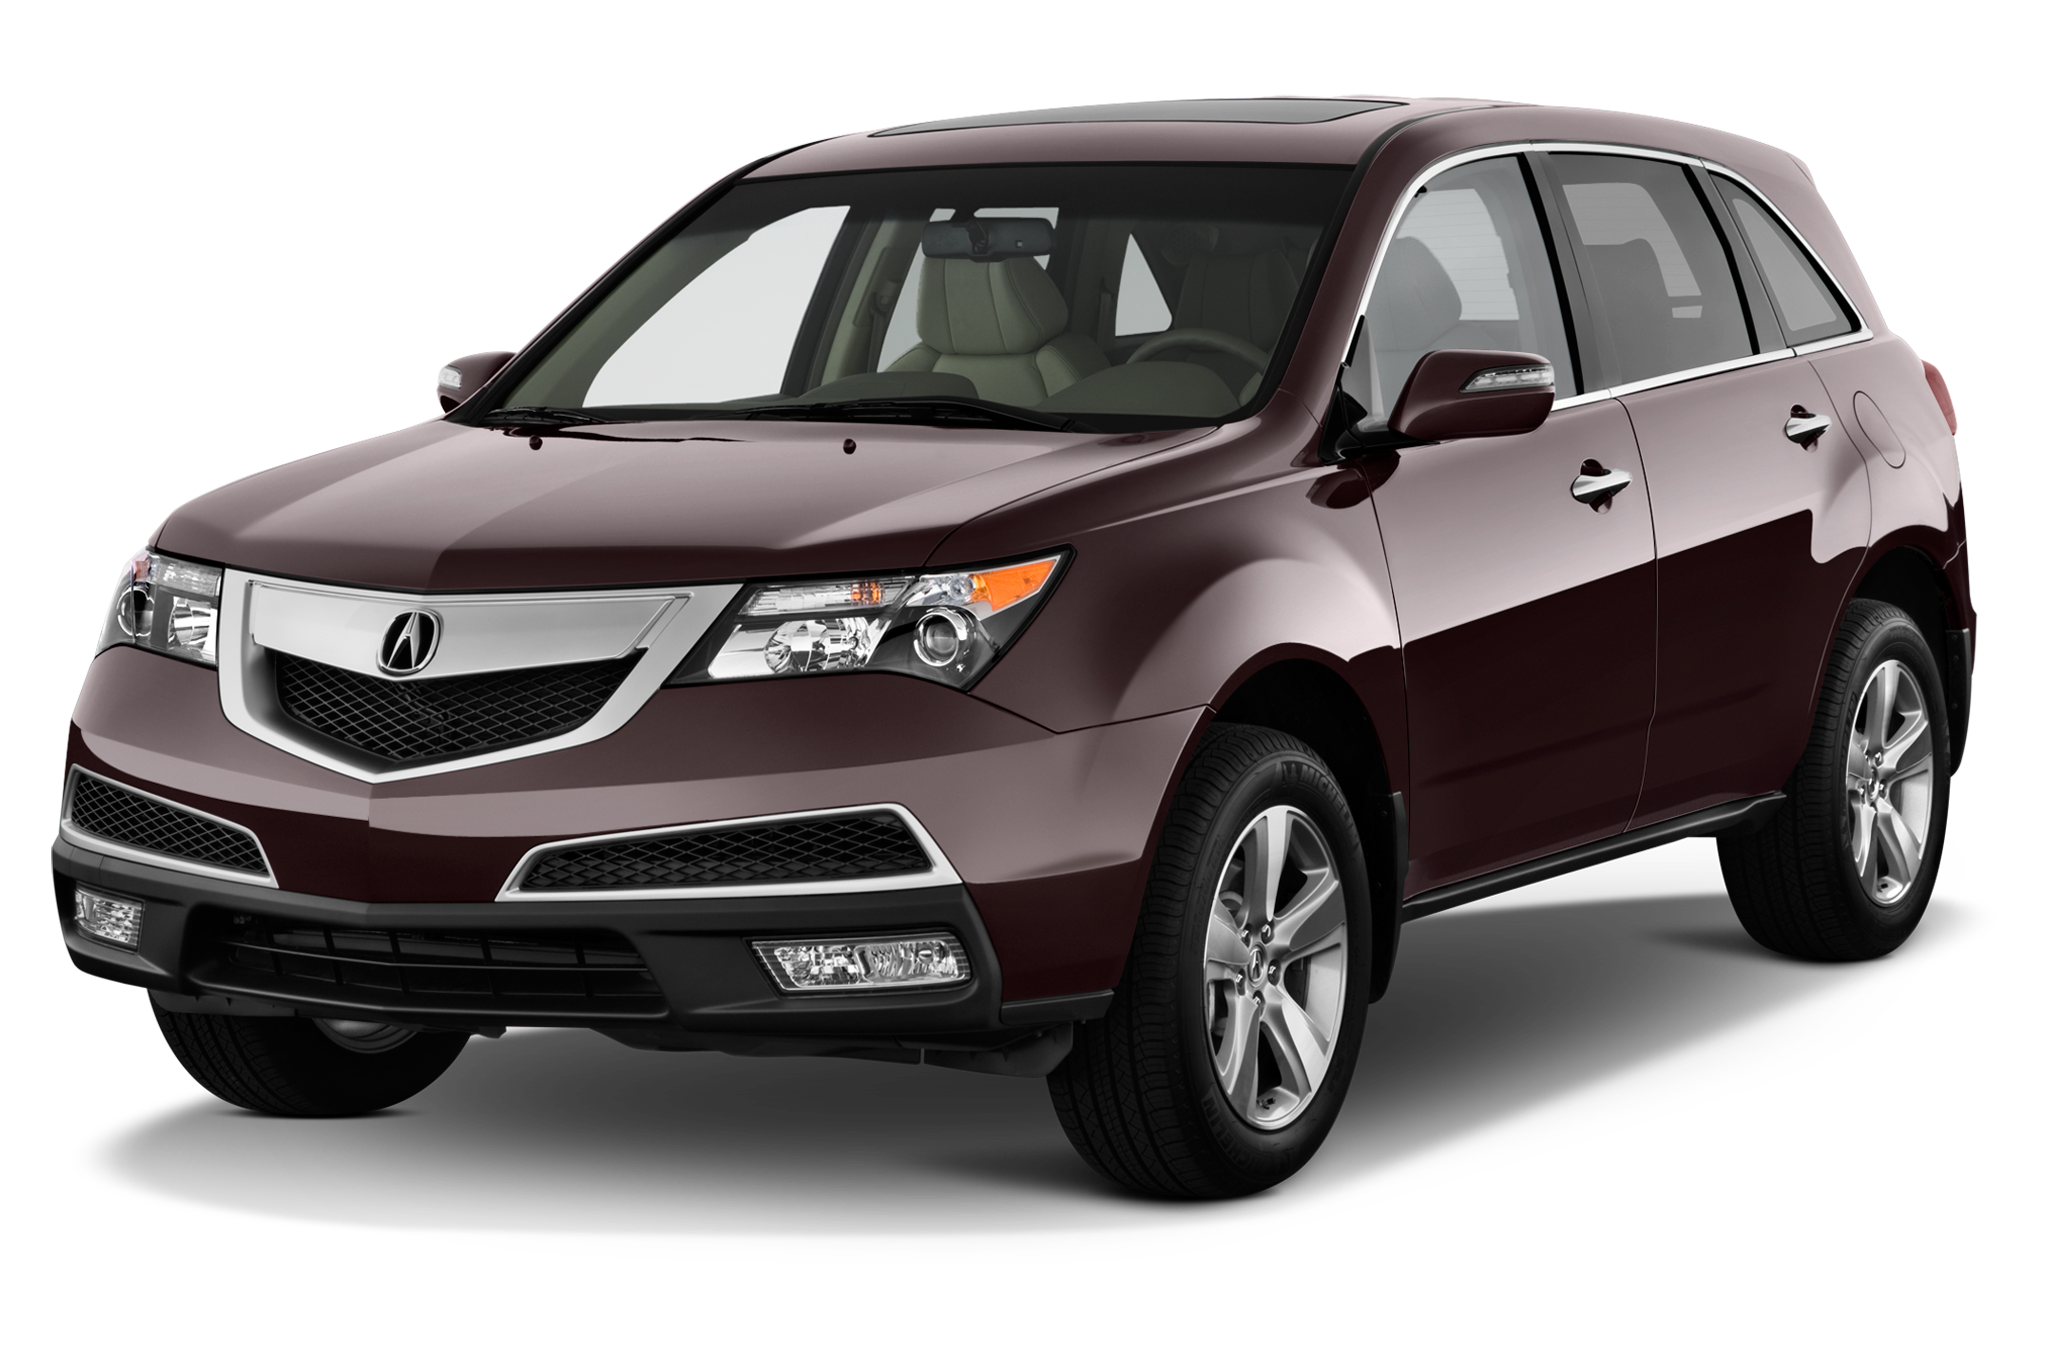 2010 Acura MDX - Acura Luxury Crossover SUV Review ...